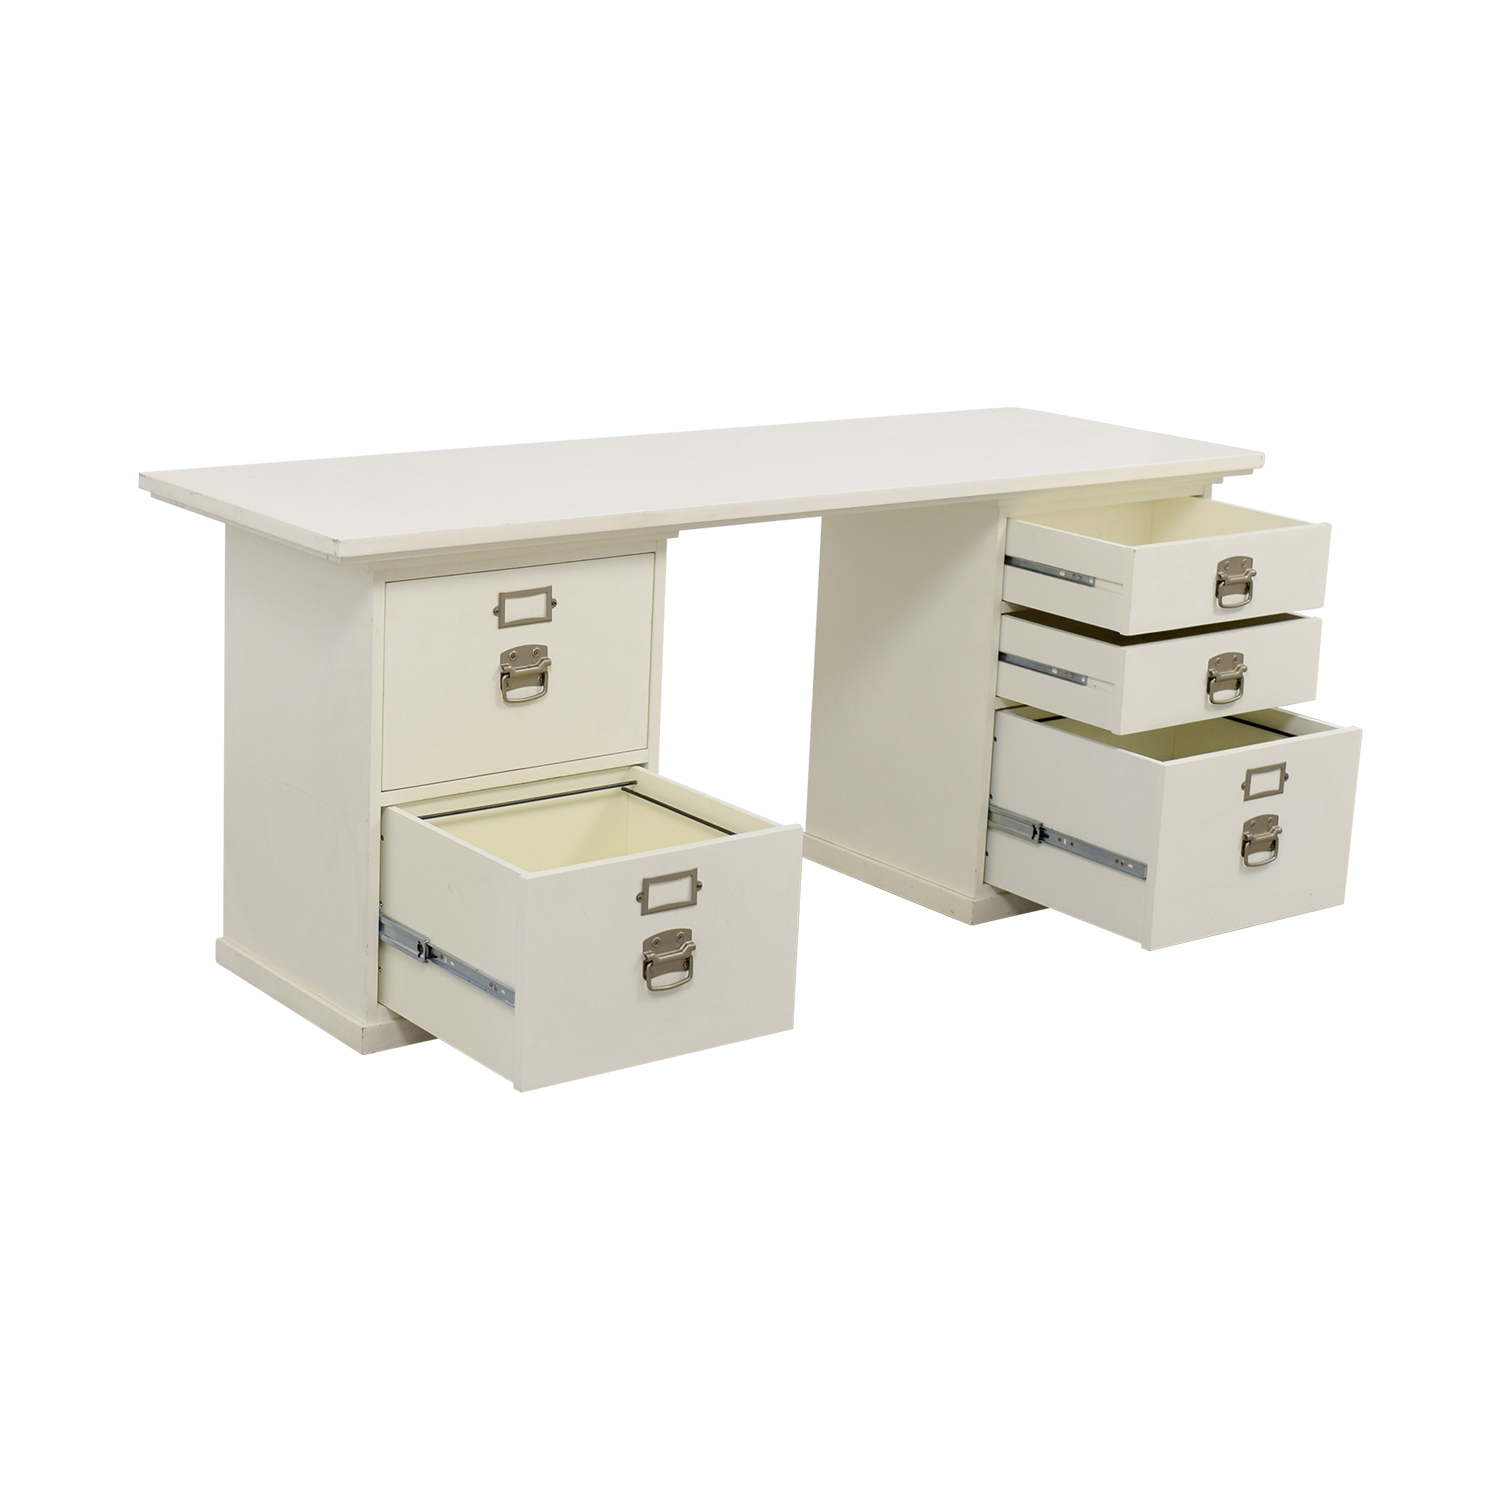 76 off pottery barn pottery barn bedford white desk tables - Pottery barn office desk ...